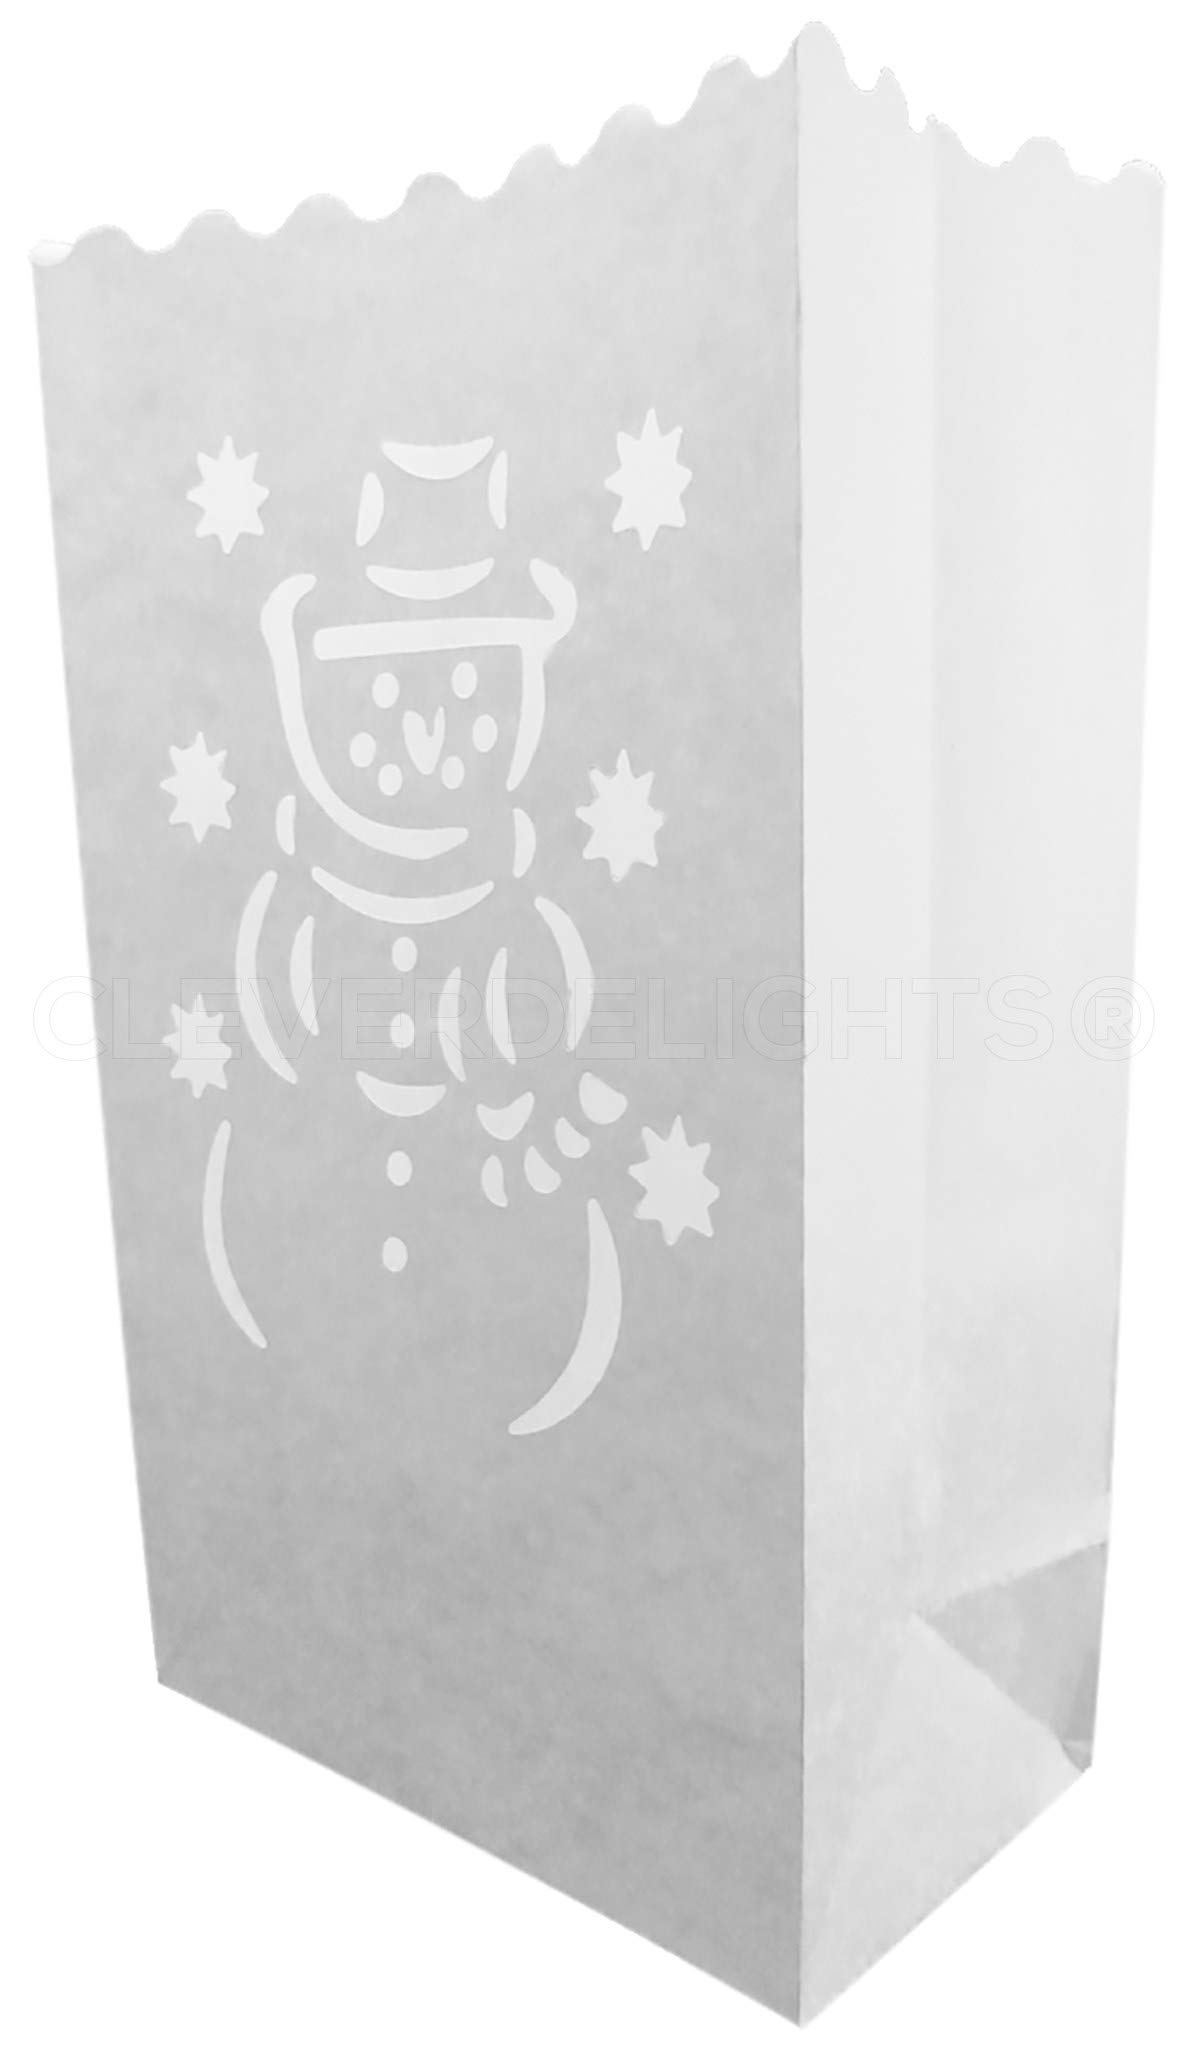 CleverDelights White Luminary Bags - 30 Count - Snowman Design - Flame Resistant Paper - Christmas Holiday Outdoor Decorations - Party and Event Decor - Luminaria Candle Bag - Thirty Bags by CleverDelights